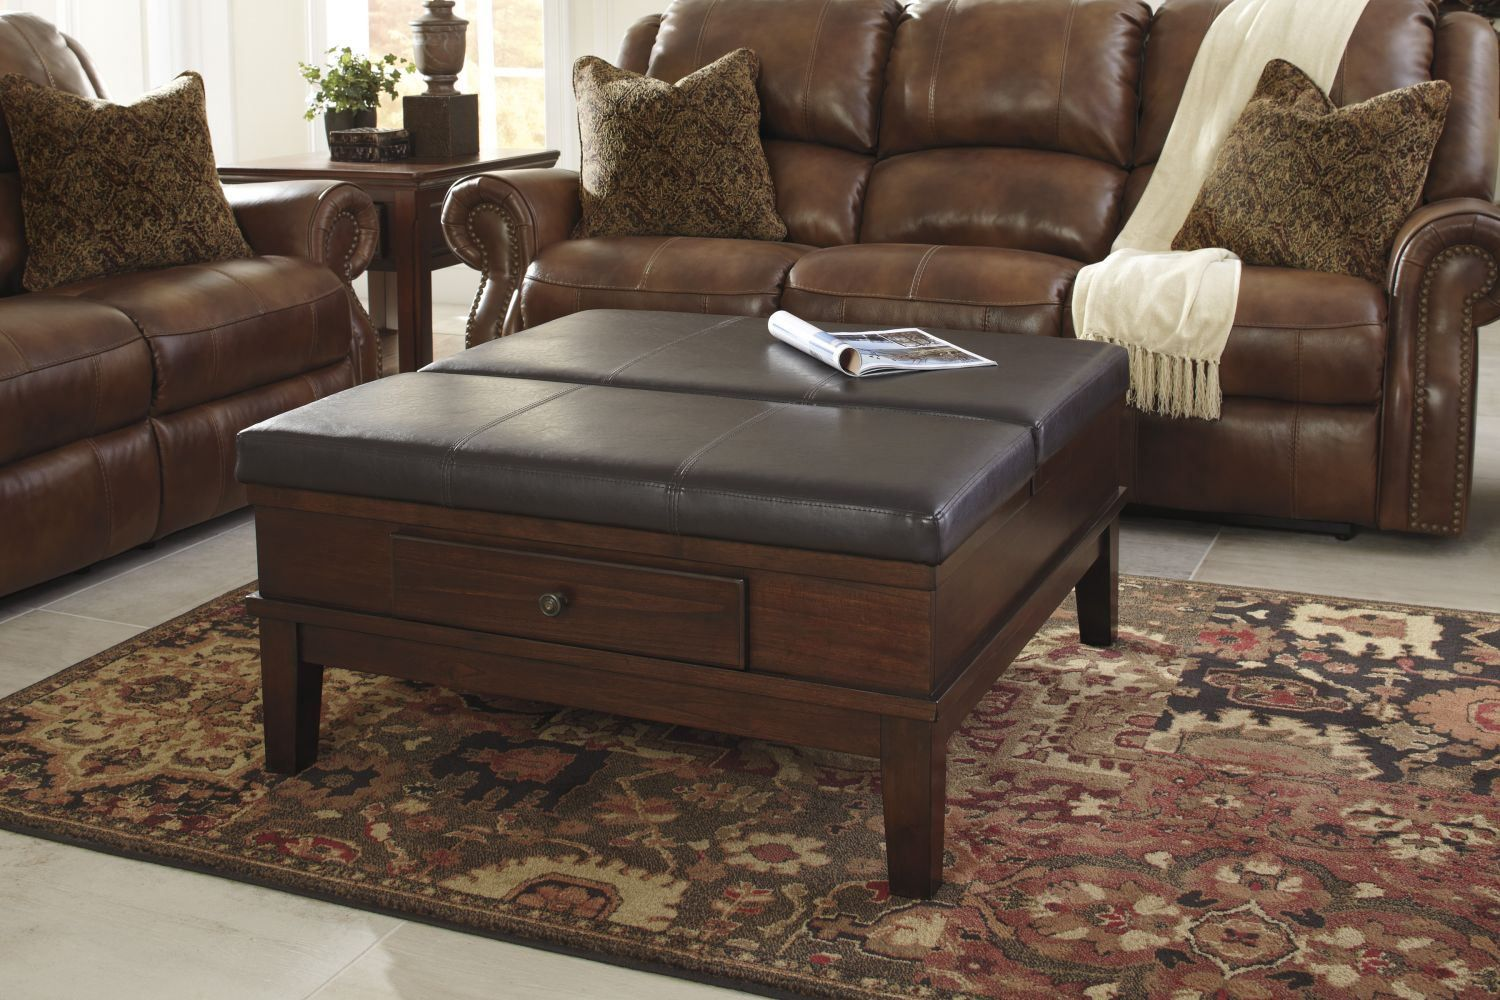 Pin By Cathryn Rillo On Dld In 2020 Ottoman Coffee Table Ottoman Table Leather Ottoman Coffee Table [ 1000 x 1500 Pixel ]